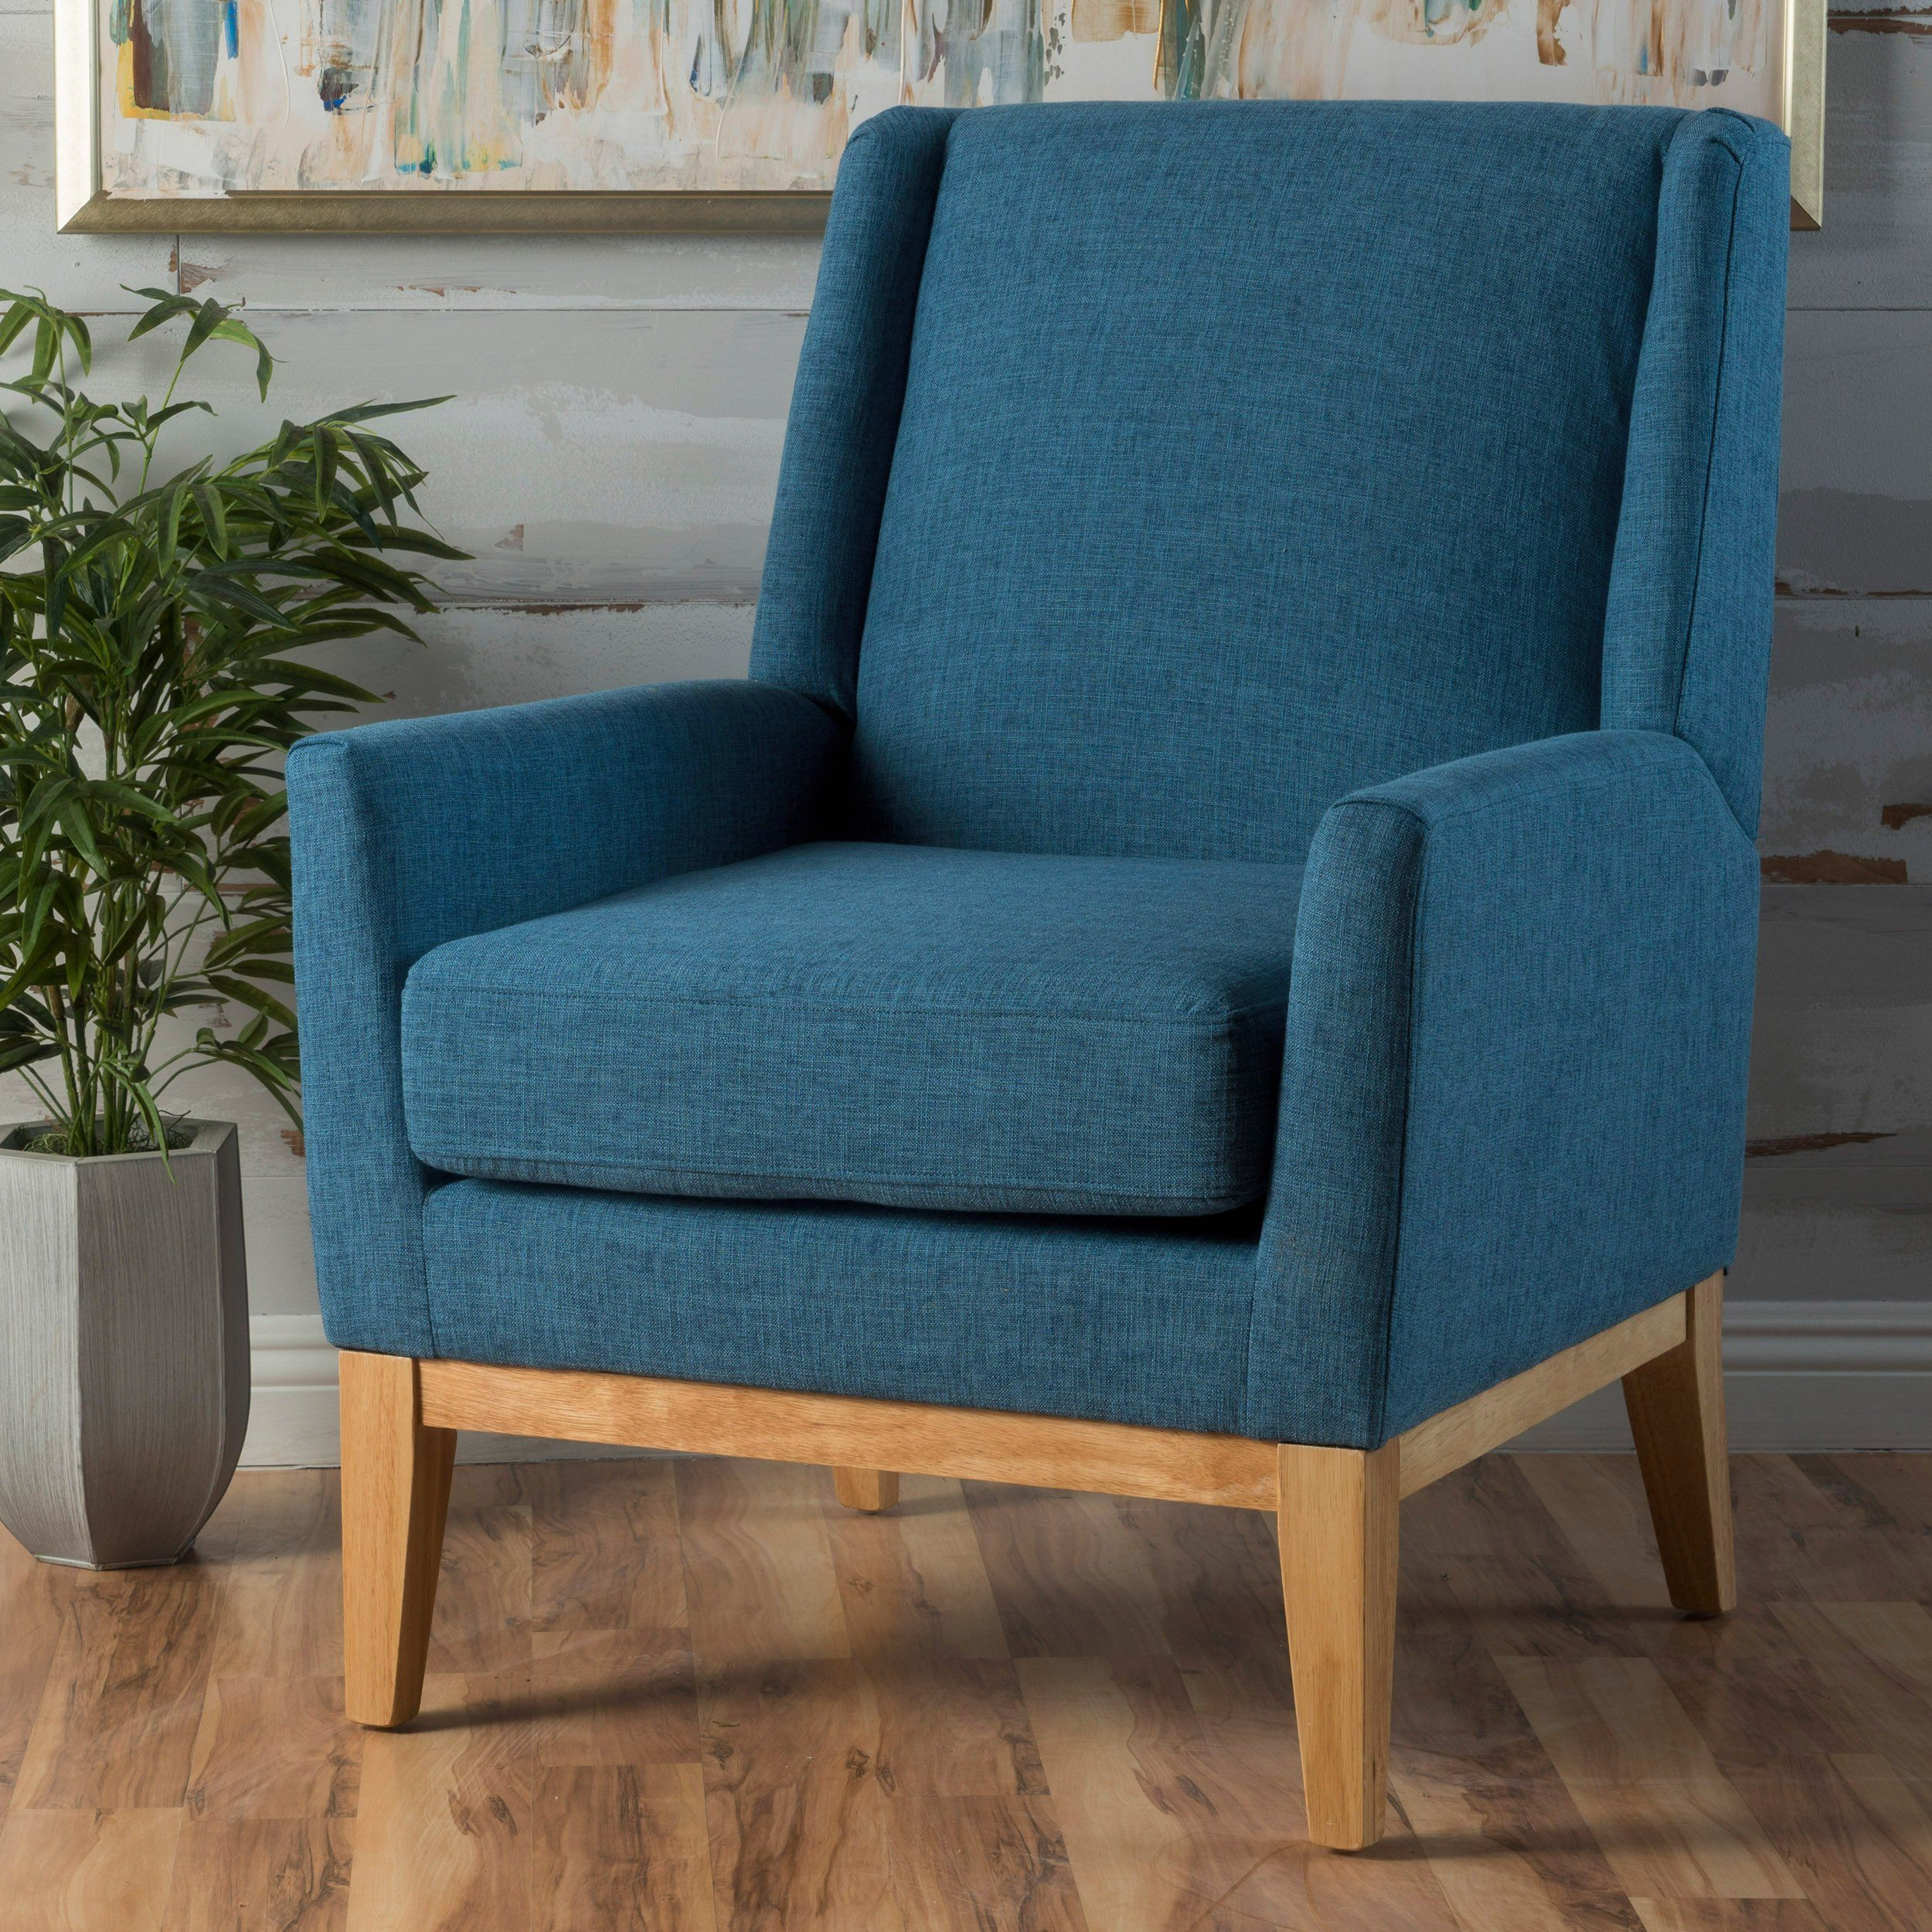 Best Archibald Mid Century Modern Fabric Accent Chair In 640 x 480